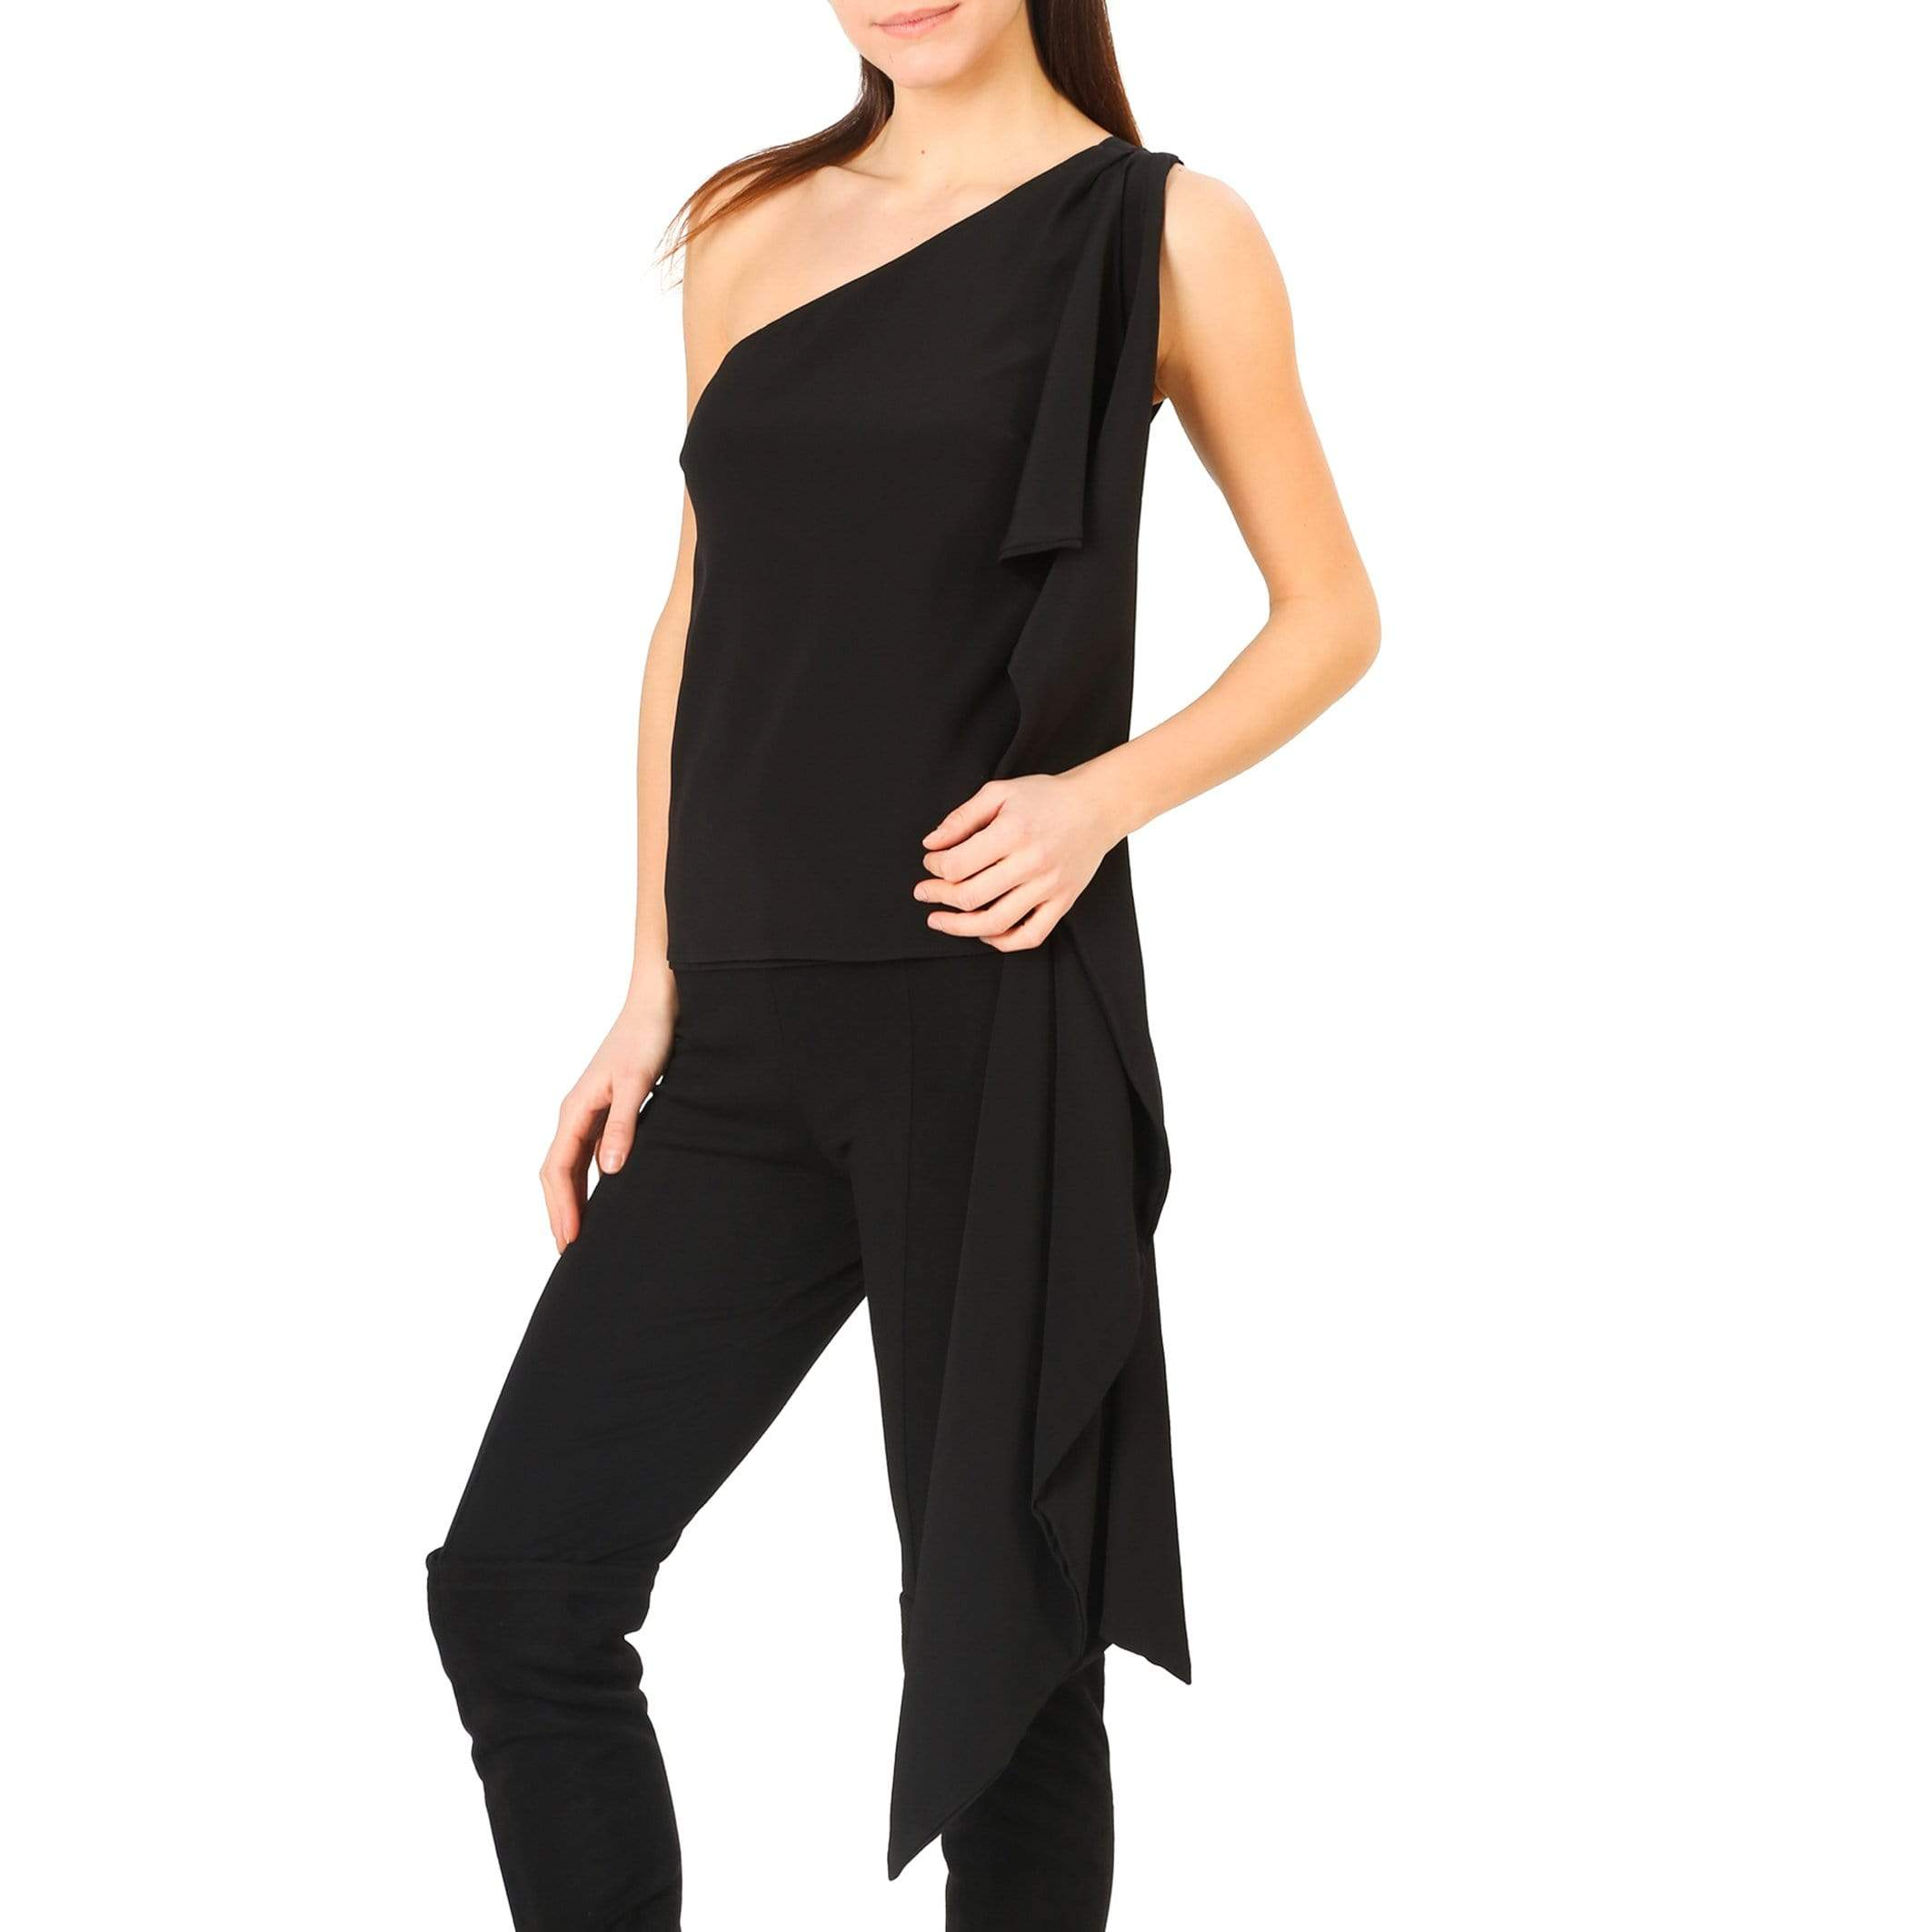 Annarita N Clothing Tops black / 38 Annarita N - 346